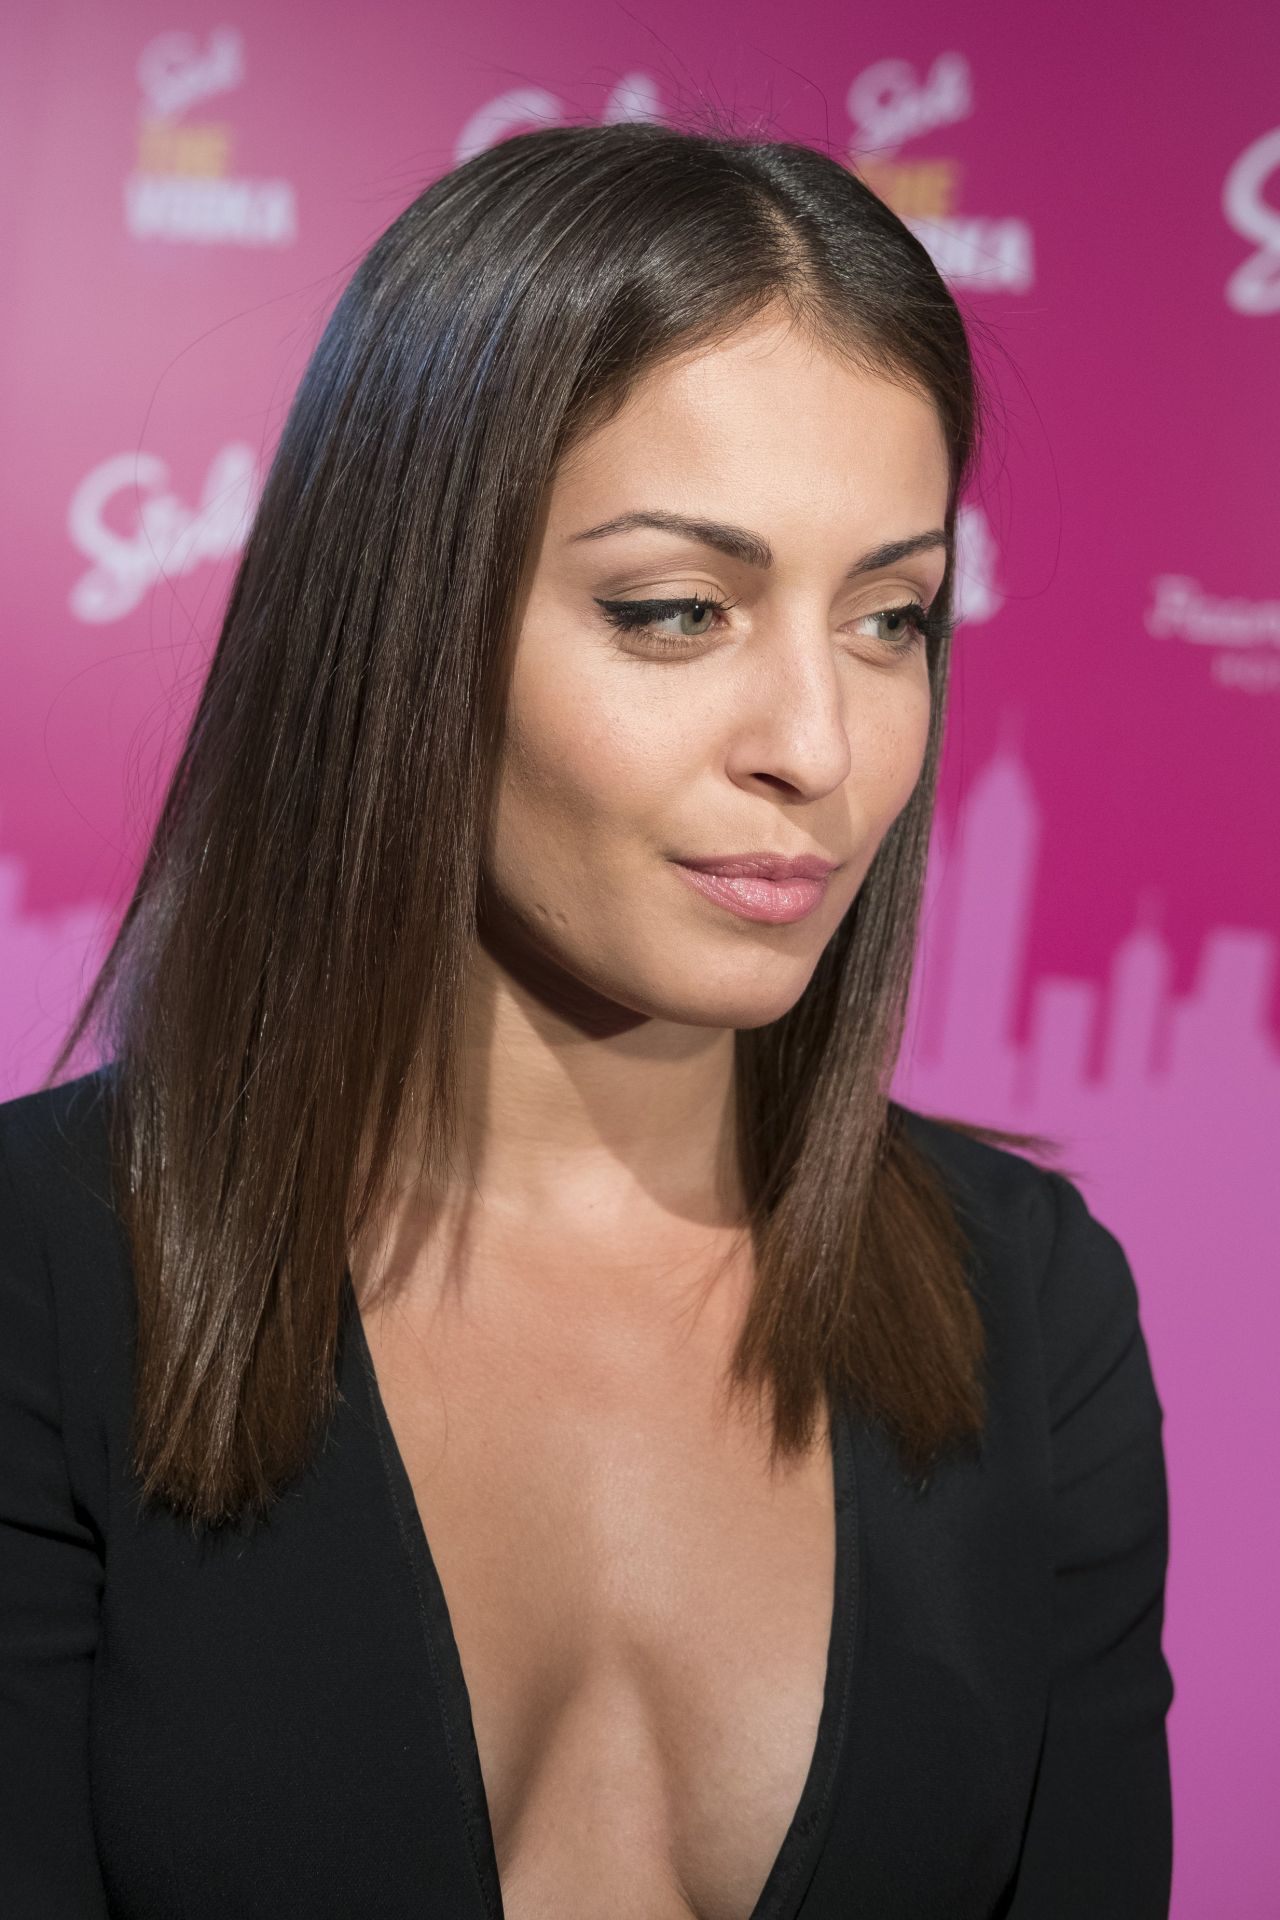 Hiba Abouk Quot World Pride Pre Party Quot Photocall At Oscar